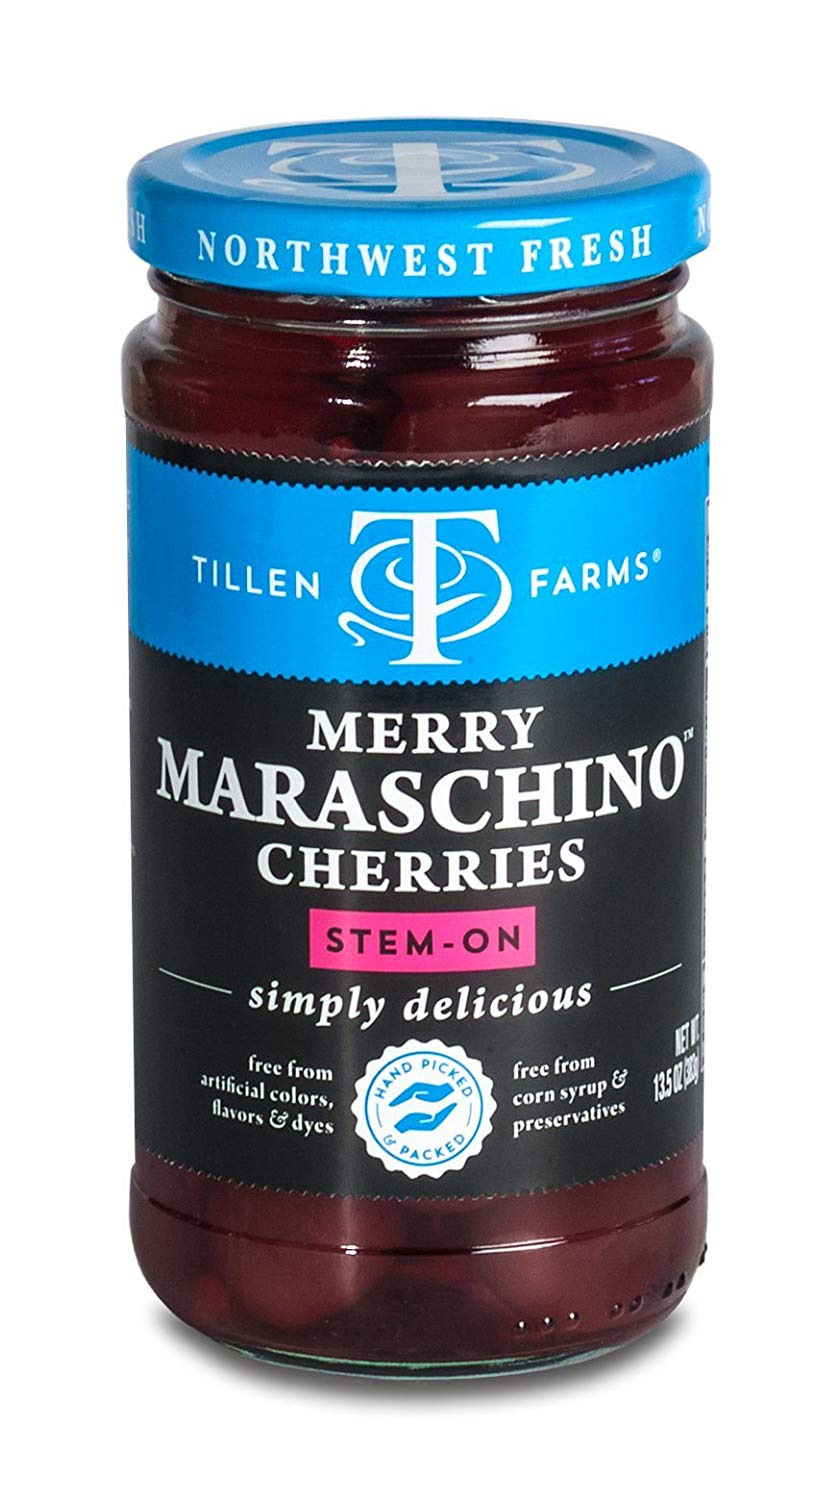 Maraschino Cherries from Tillen Farms